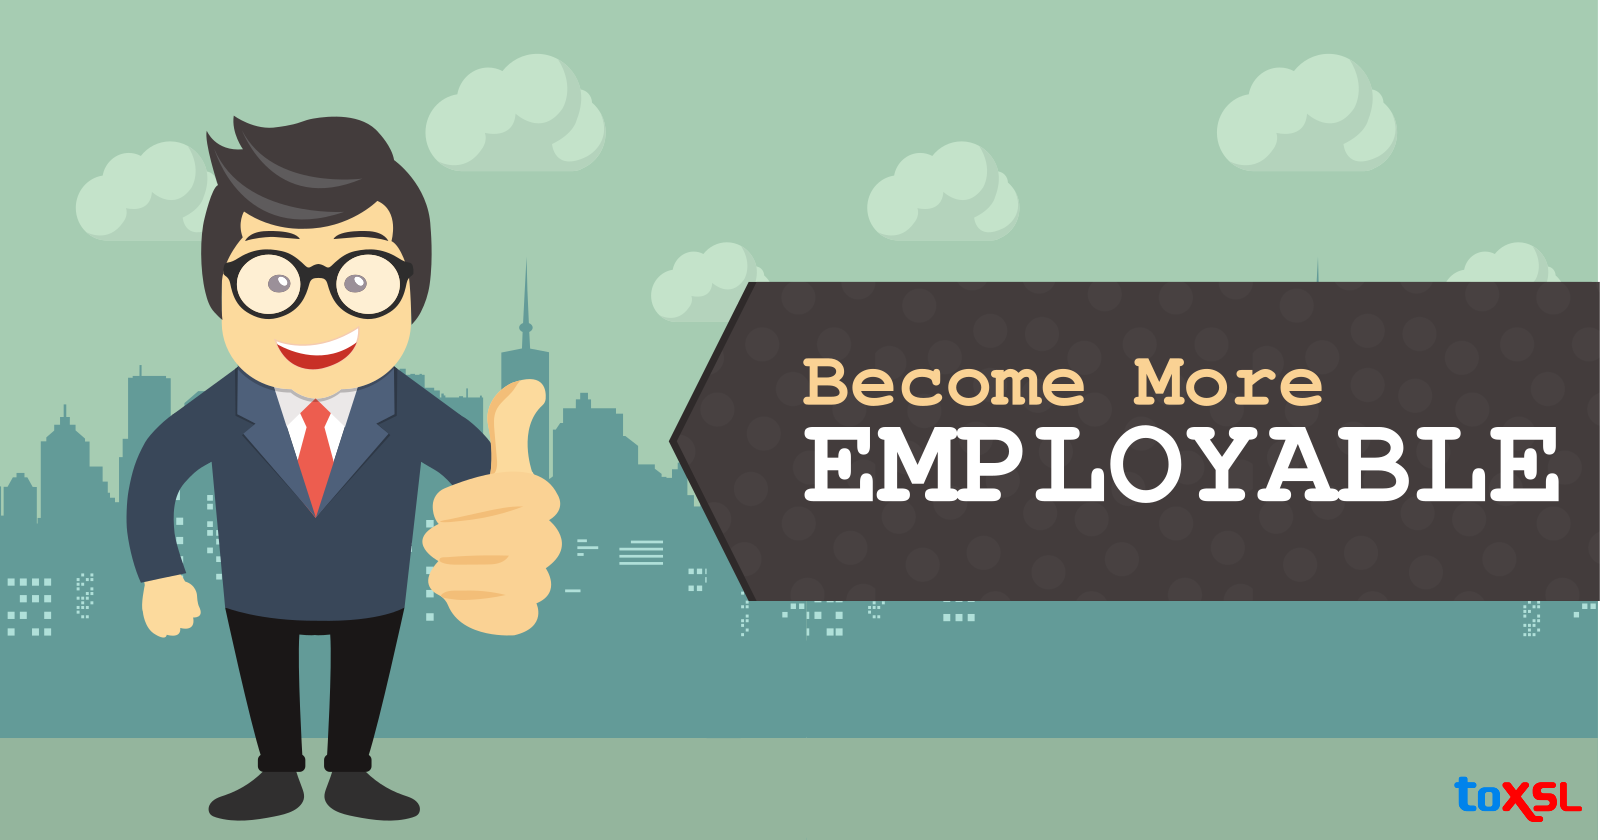 How to become more employable?